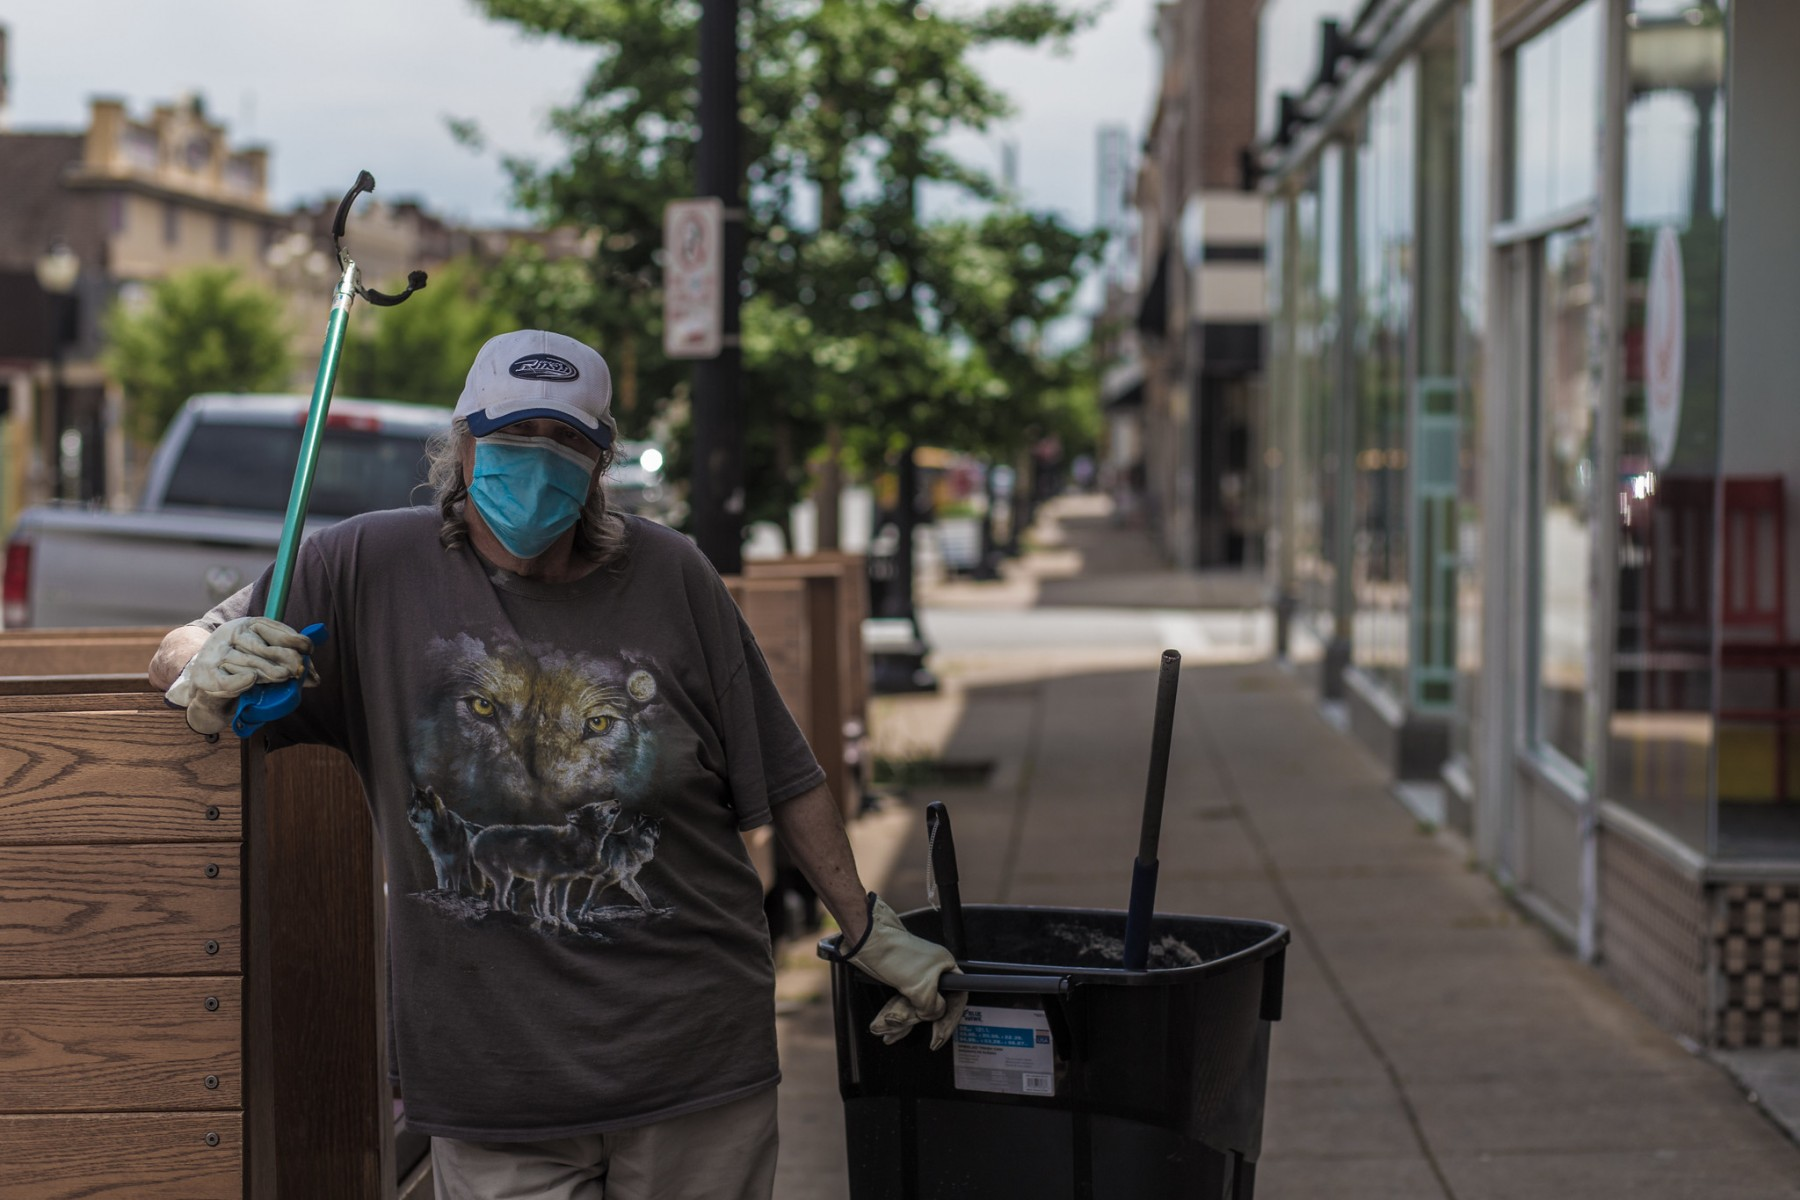 After COVID-19, life may change for essential workers like those who pick up trash.